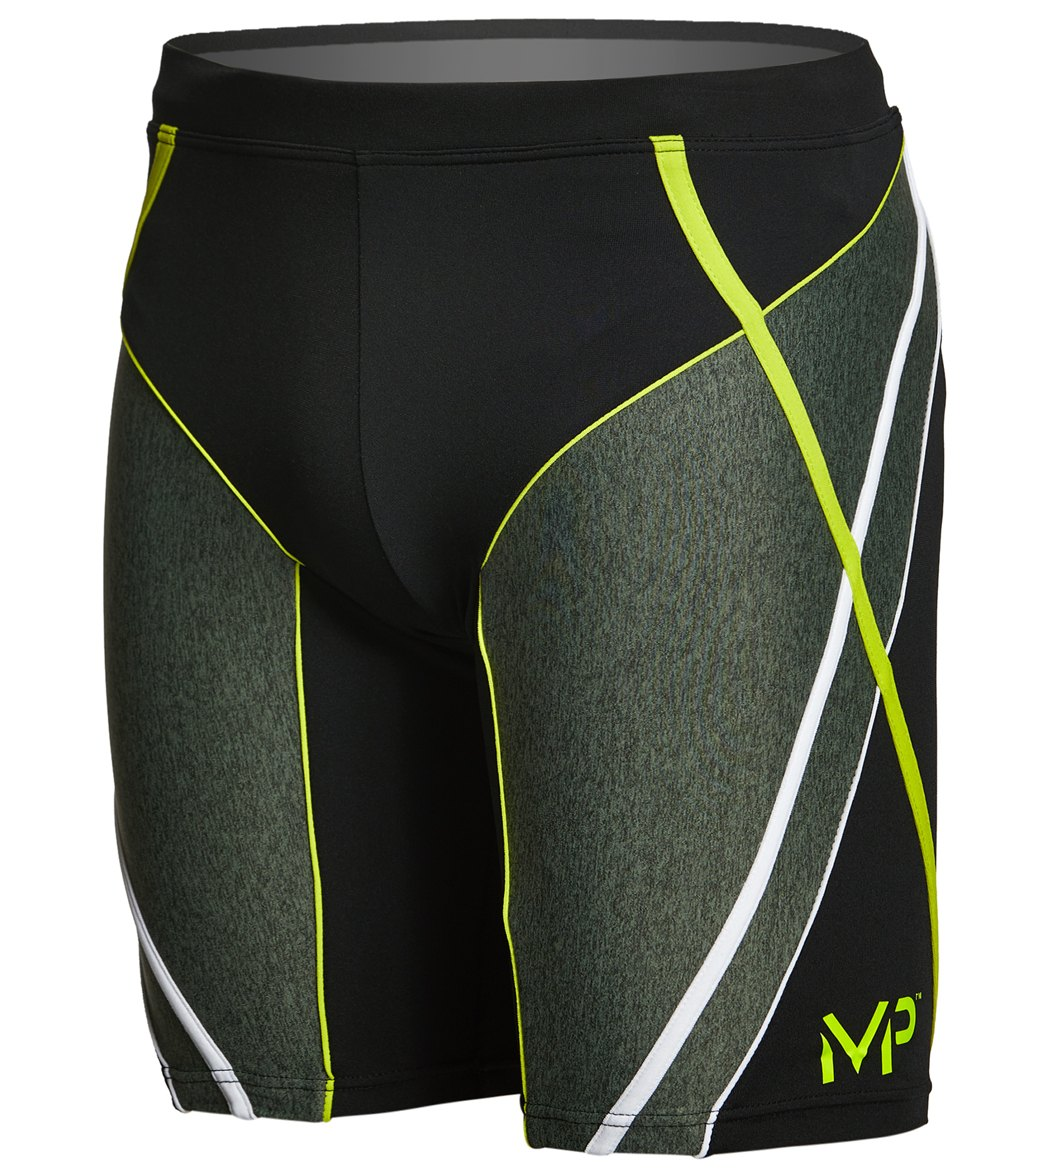 d6165dd0a4 MP Michael Phelps Men's Fast MP Jammer Swimsuit at SwimOutlet.com